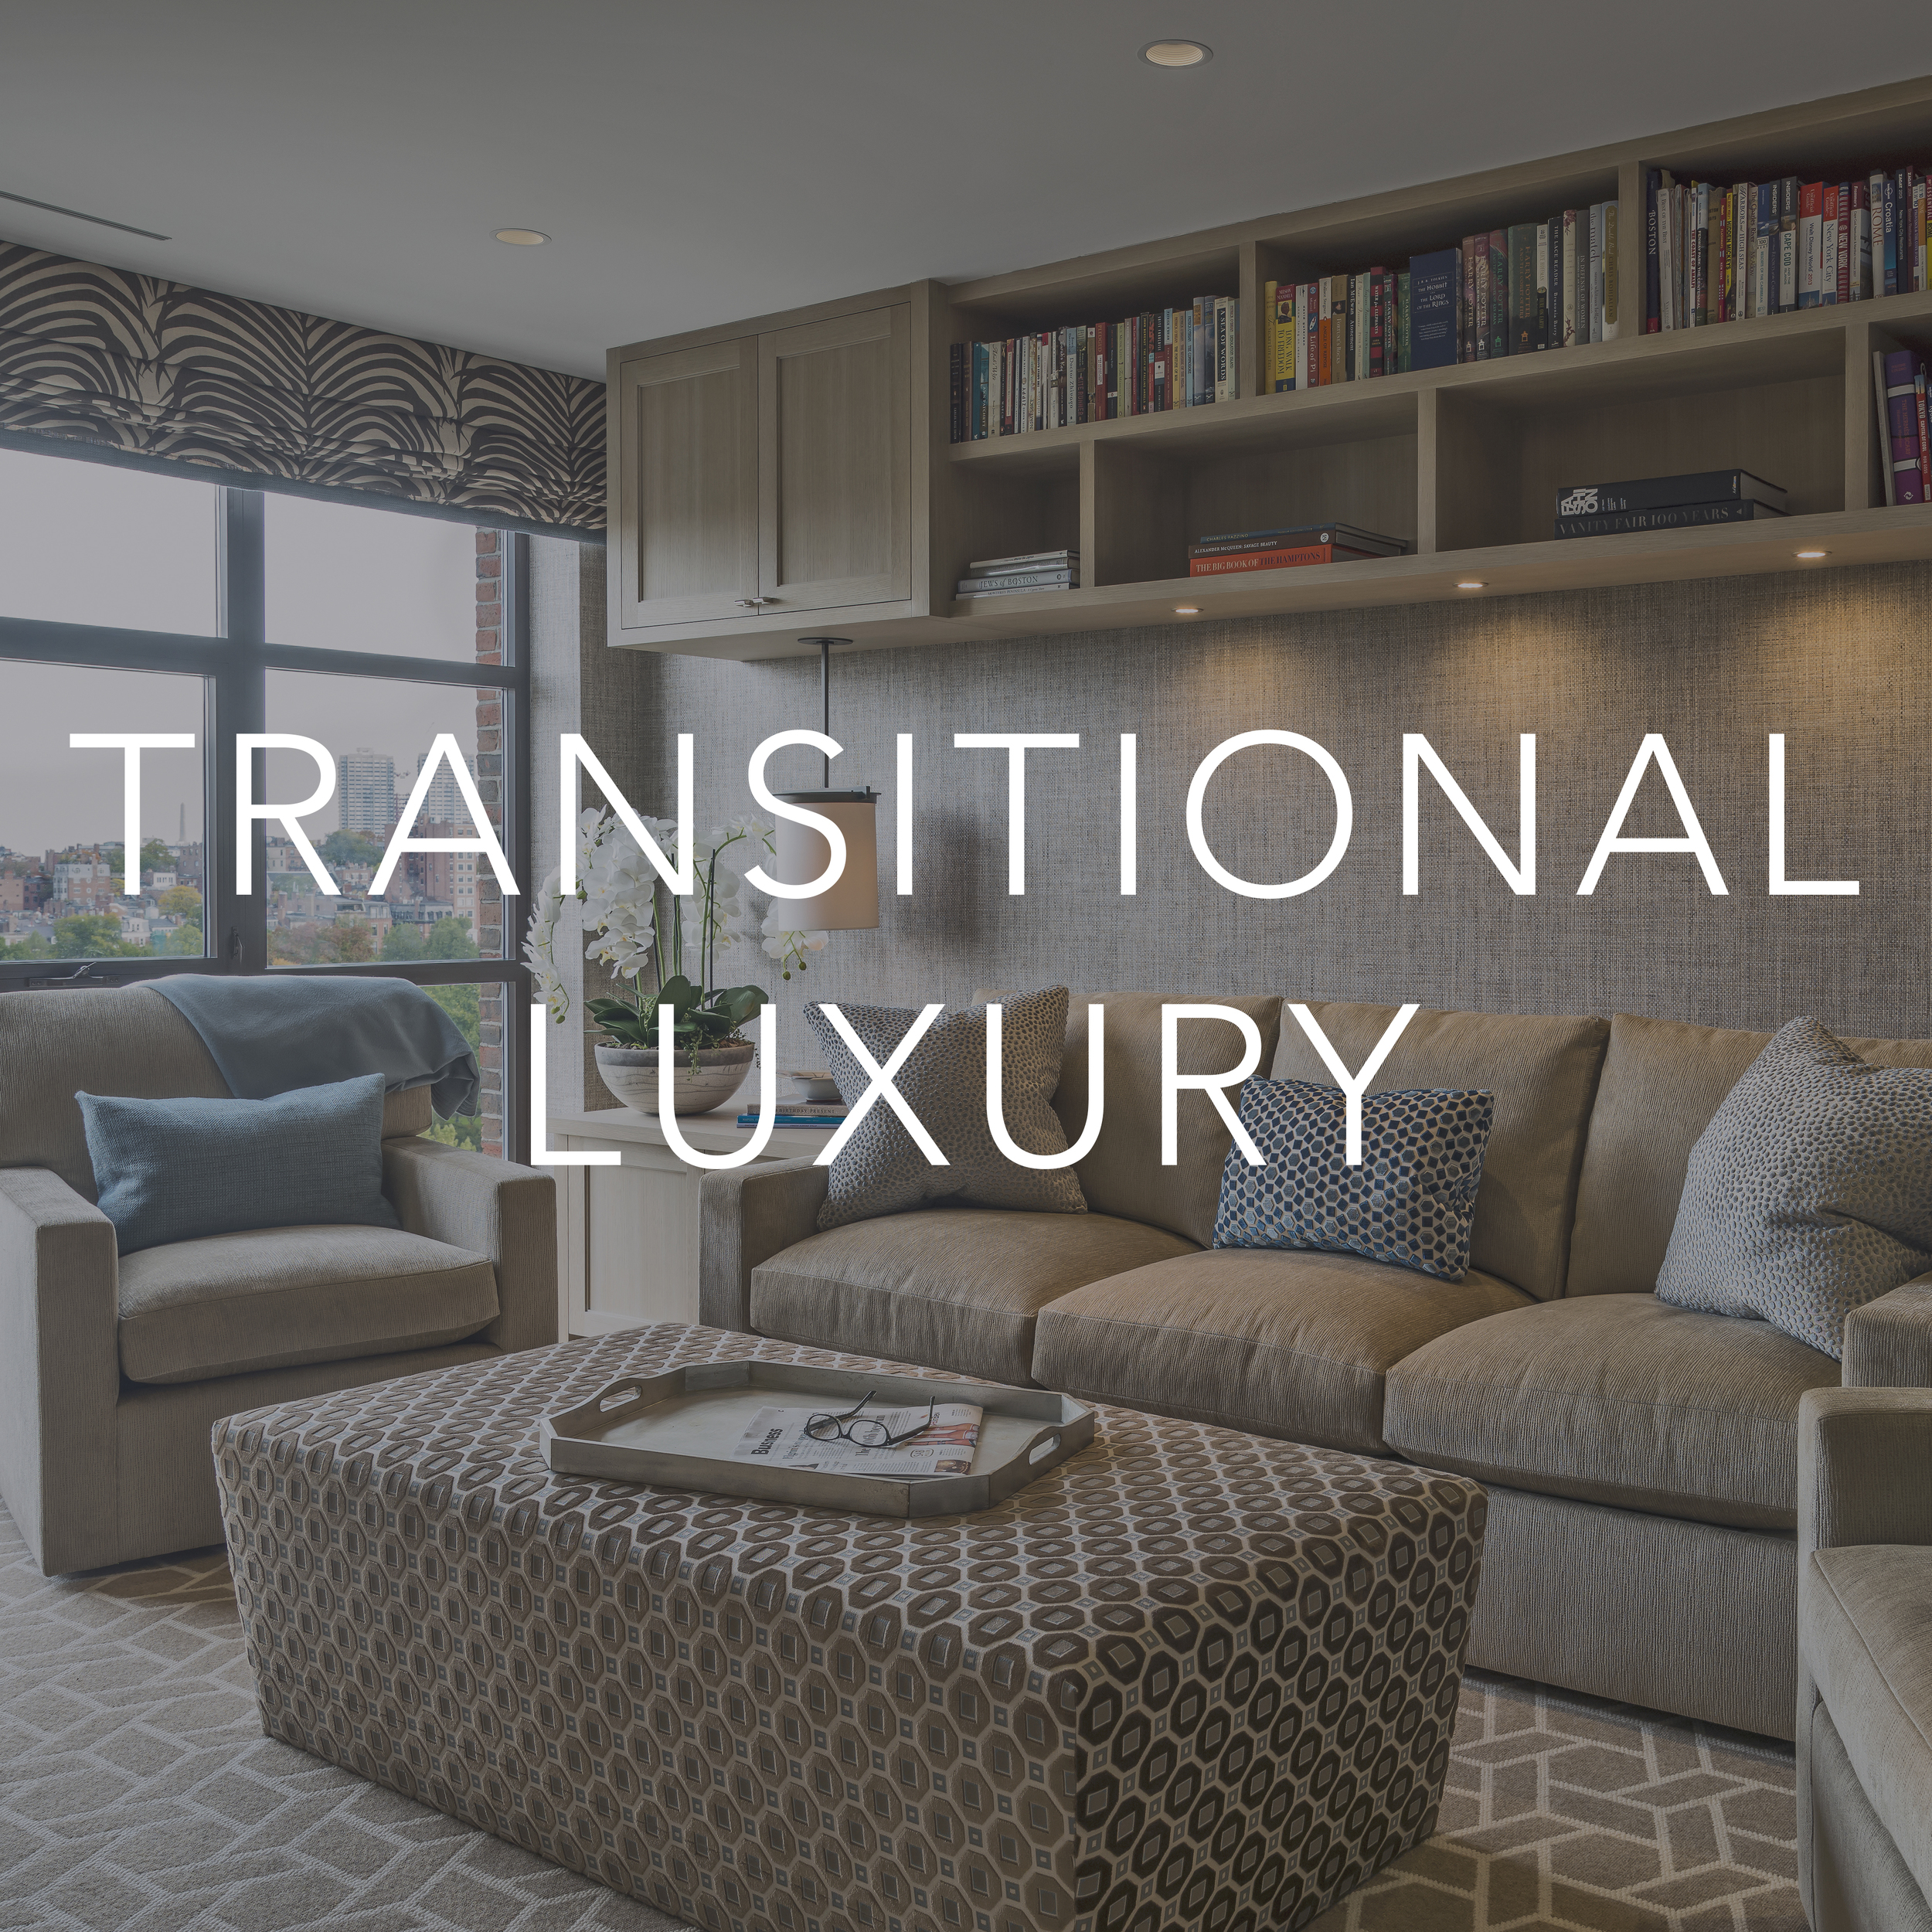 Copy of Transitional Luxury